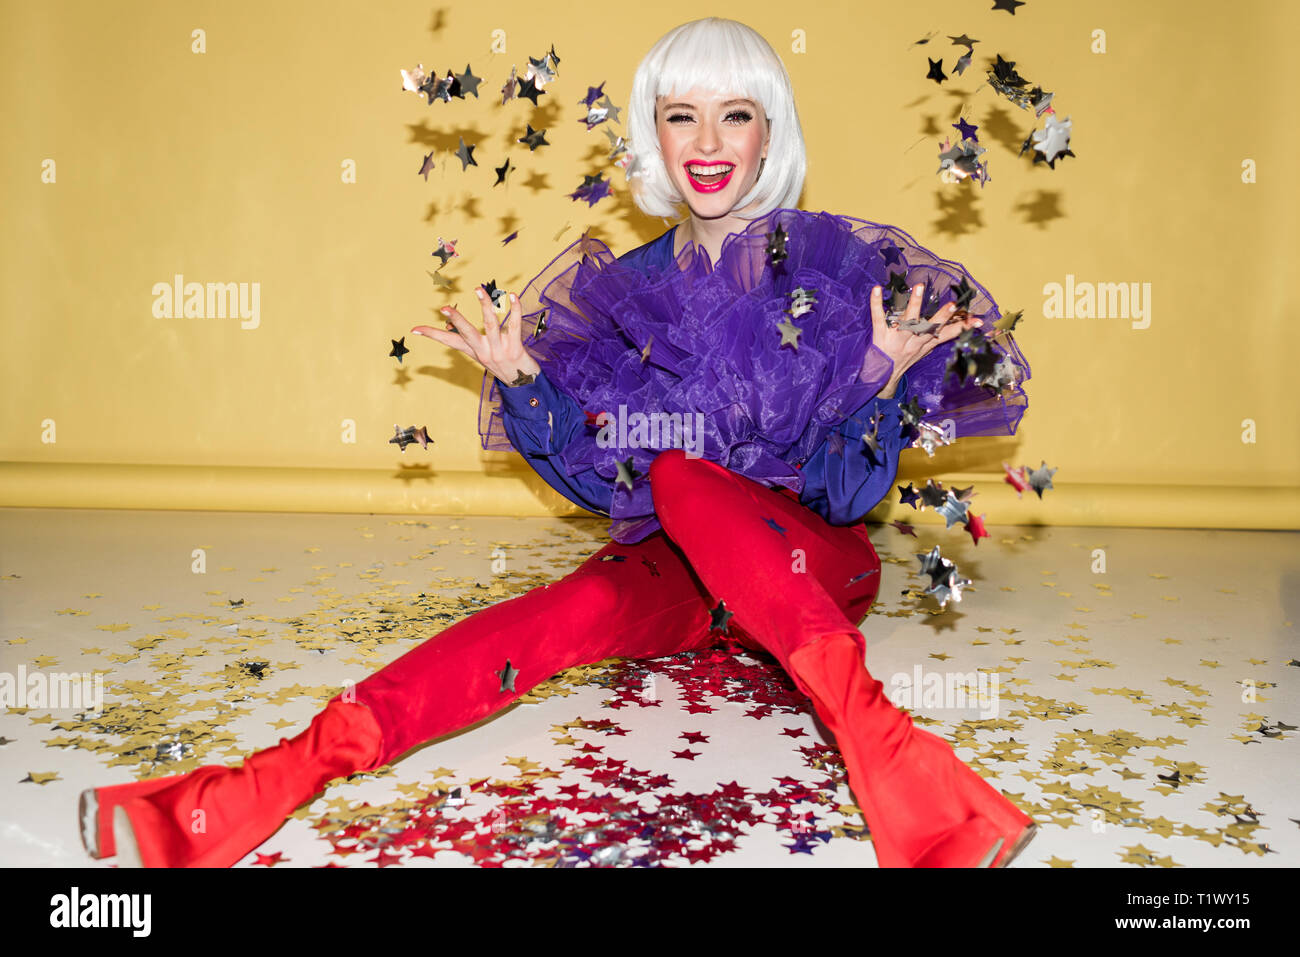 Laughing woman in red pants throwing out sparkle confetti on yellow background - Stock Image